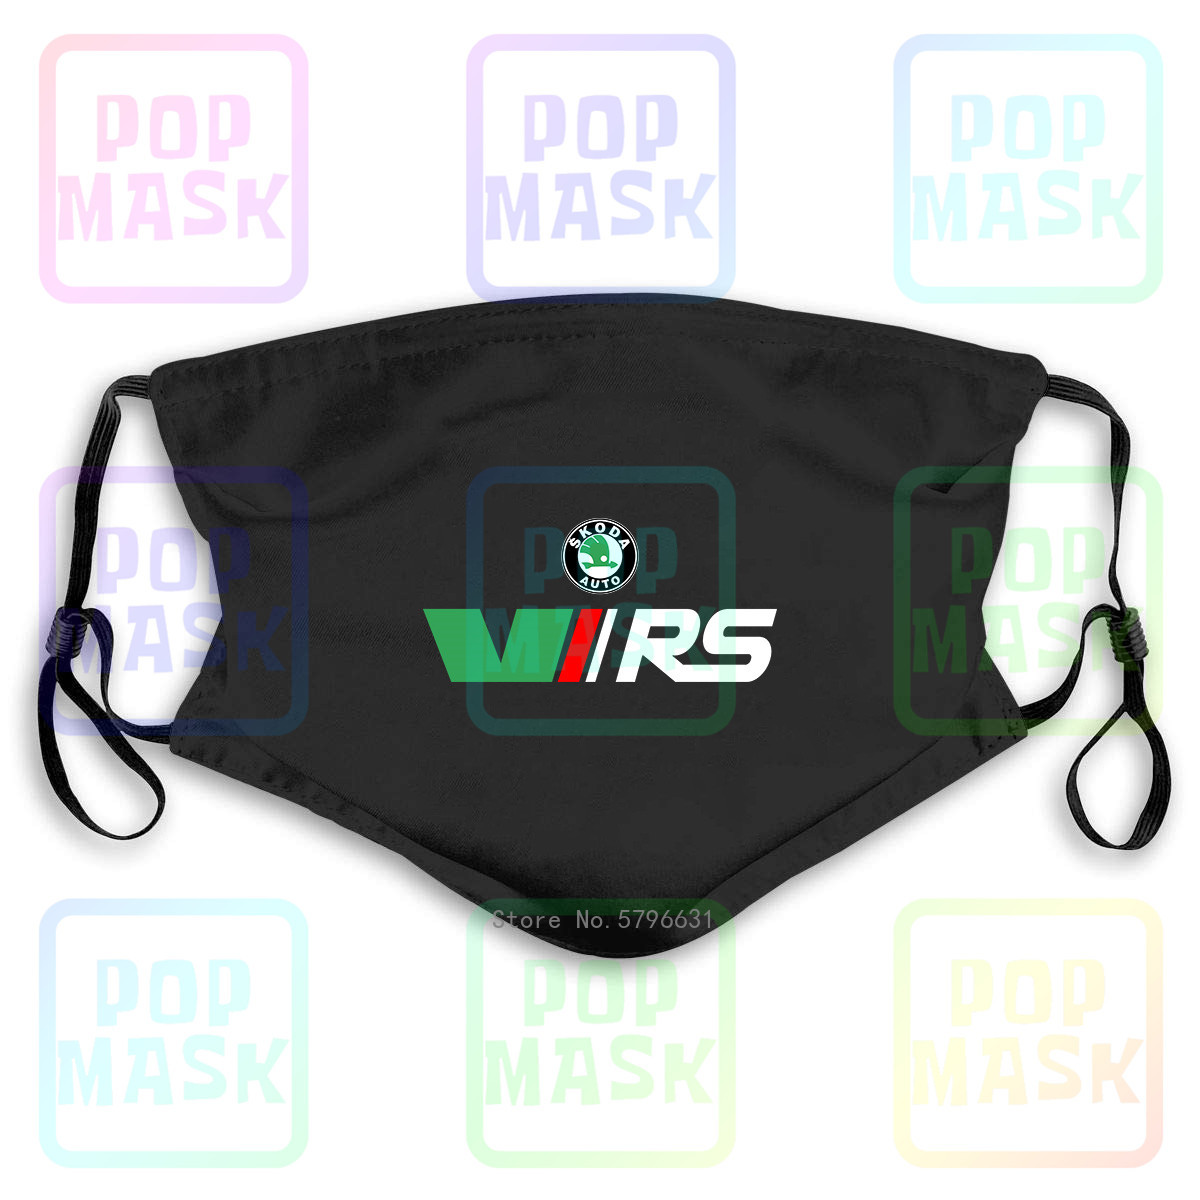 Anti Pollution Mask Skoda Rs Vrs Motorsport Graphicorrally Wrc Racing Replaceable Filter Anti-PM2.5